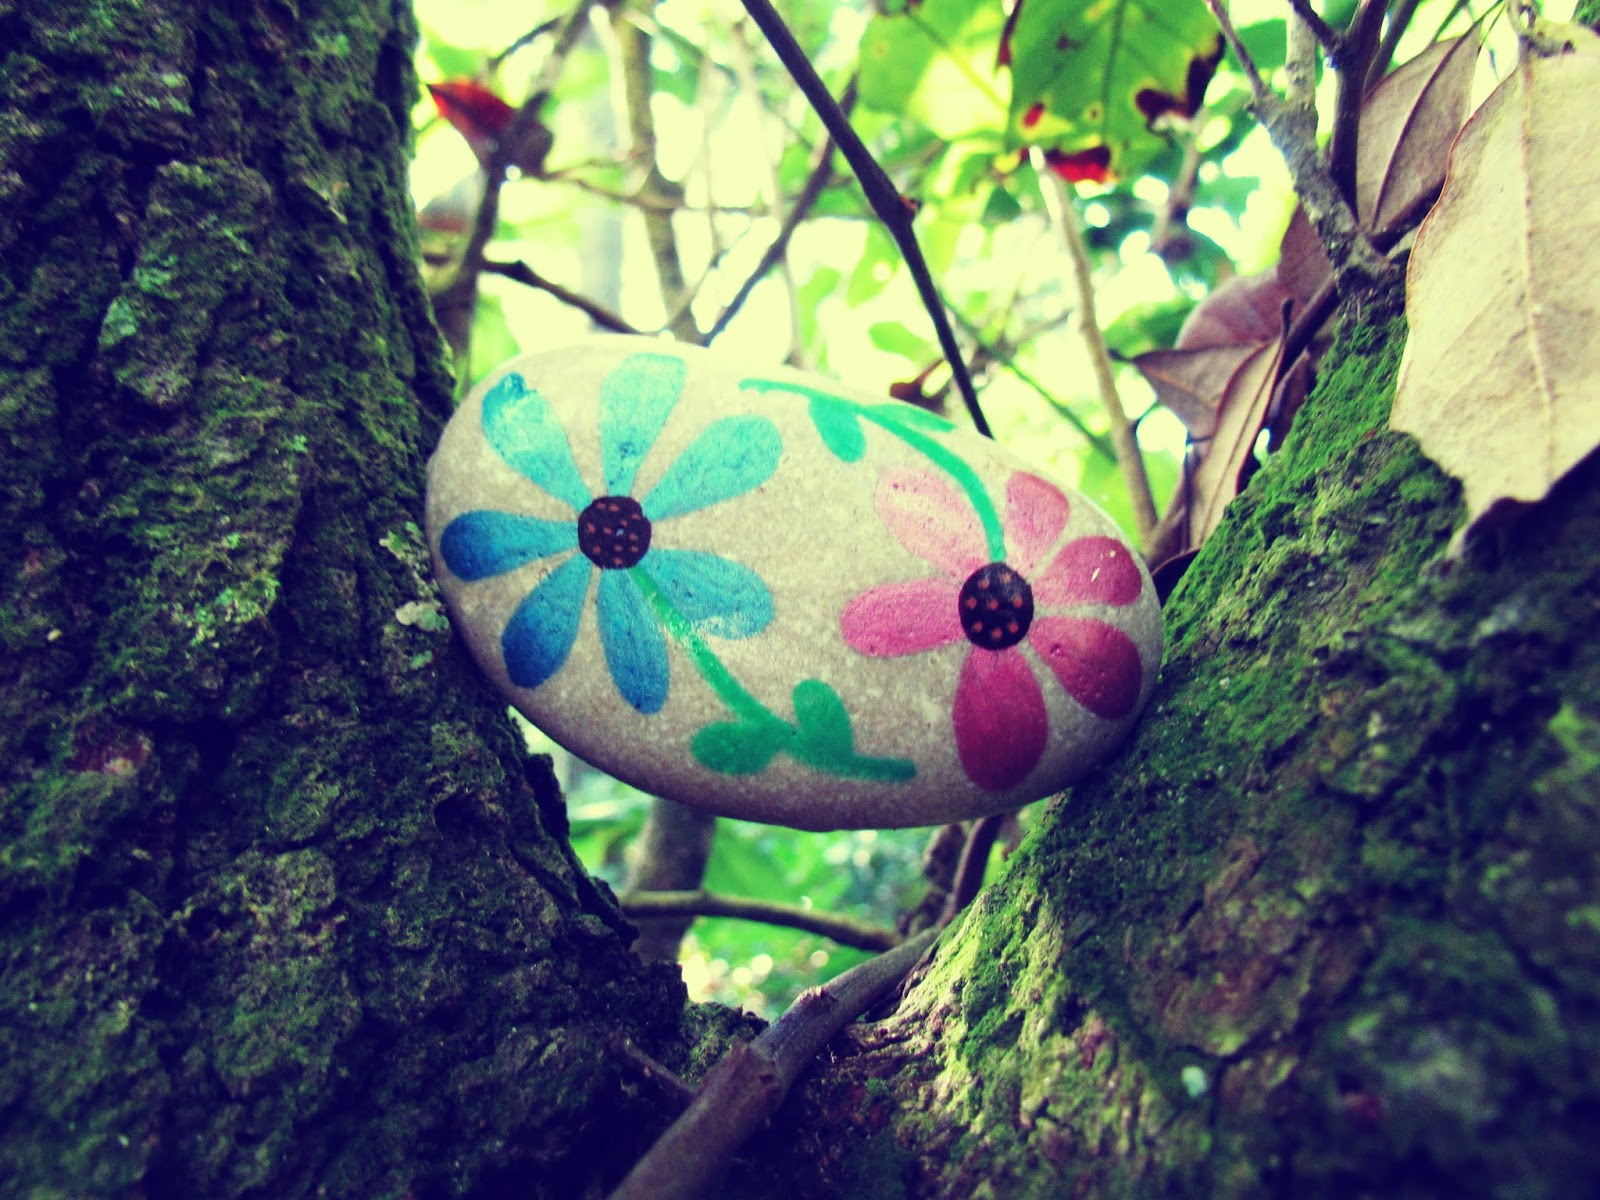 A painted floral rock design found in the trees of Hammock Park in Dunedin, Florida